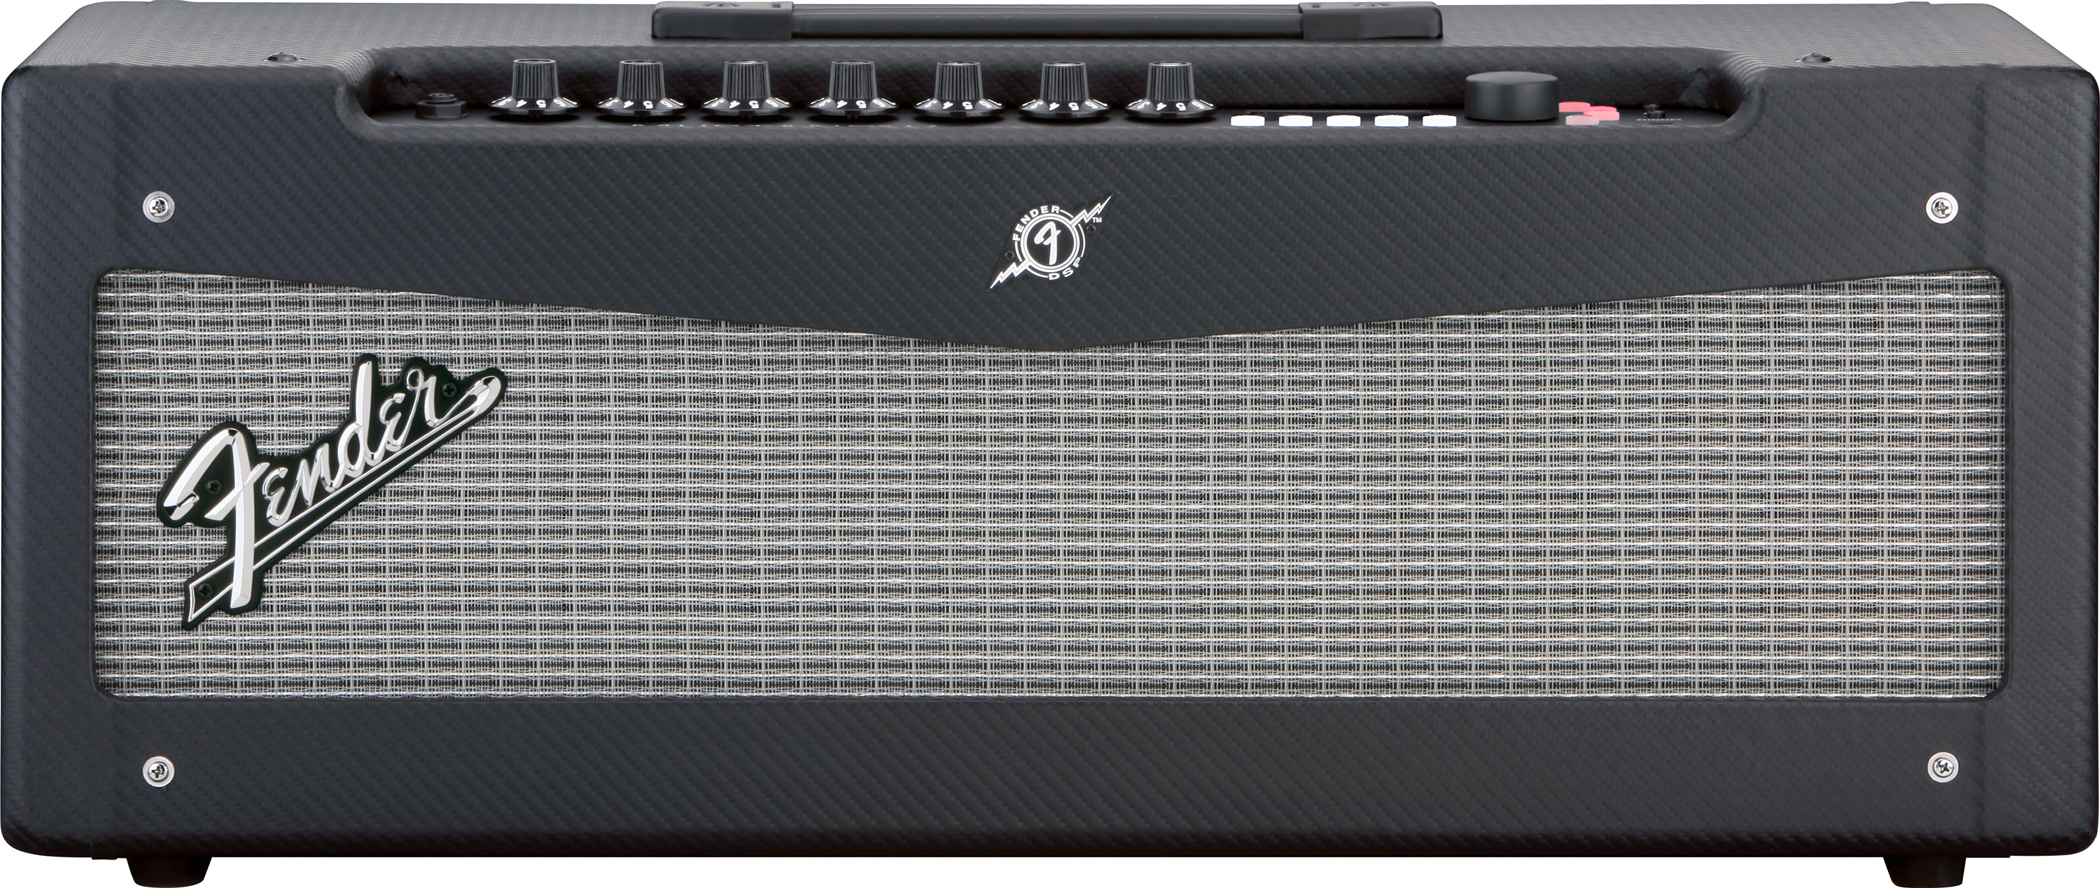 Quality Tones! Fender Mustang Amp V1 /& V2 Amplifier Preset Patch Collection